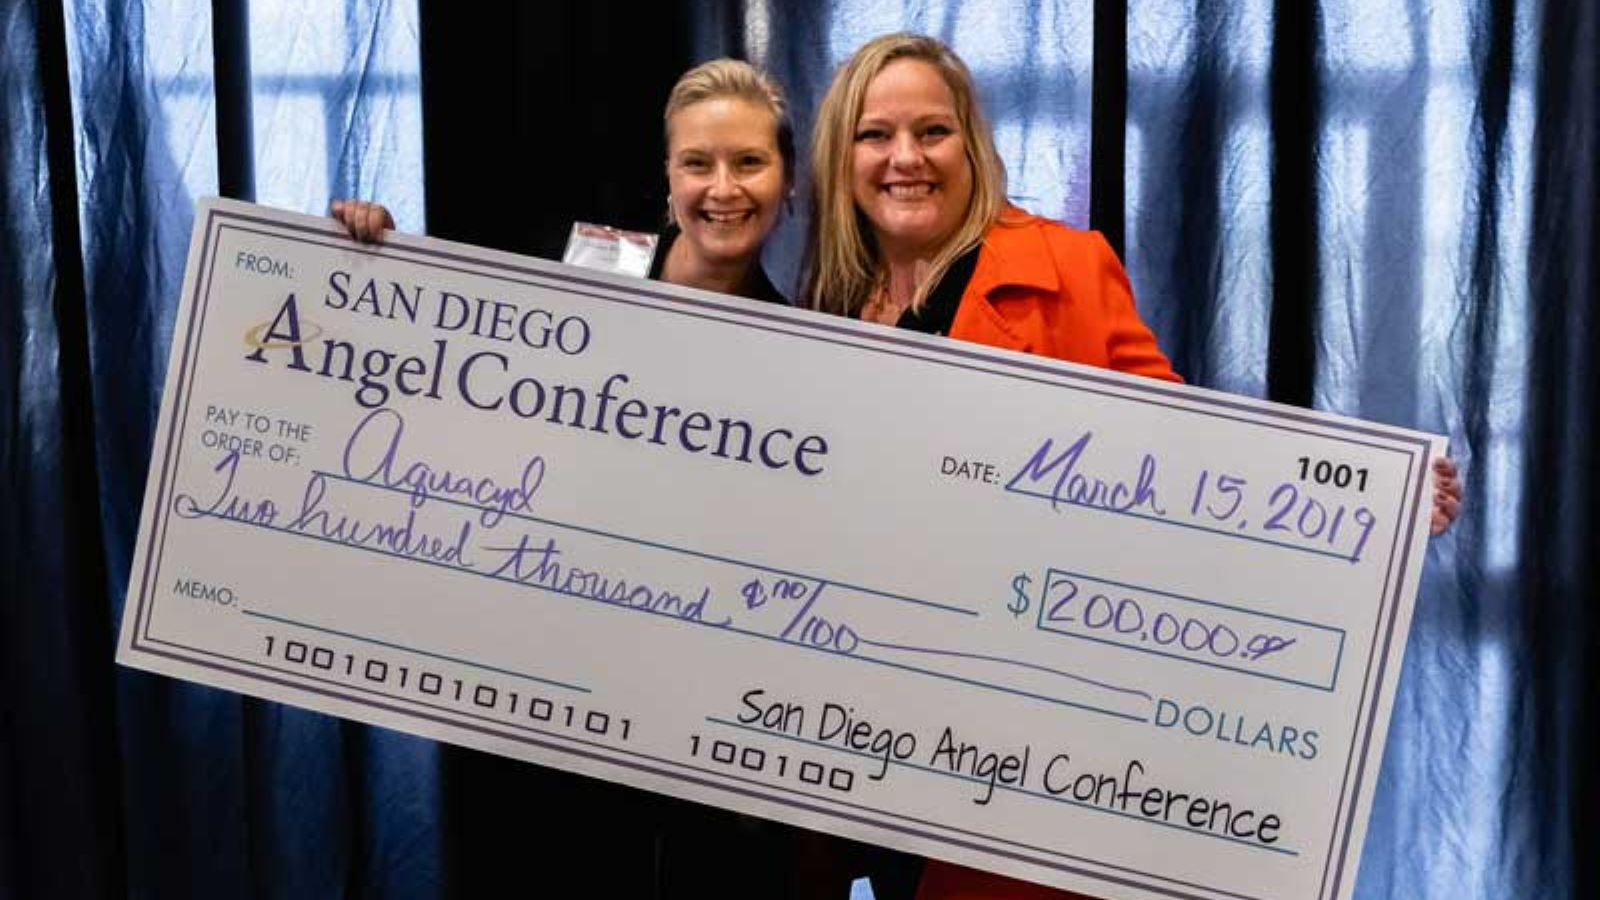 Recipient of check from the San Diego Angel Conference at The Brink SBDC